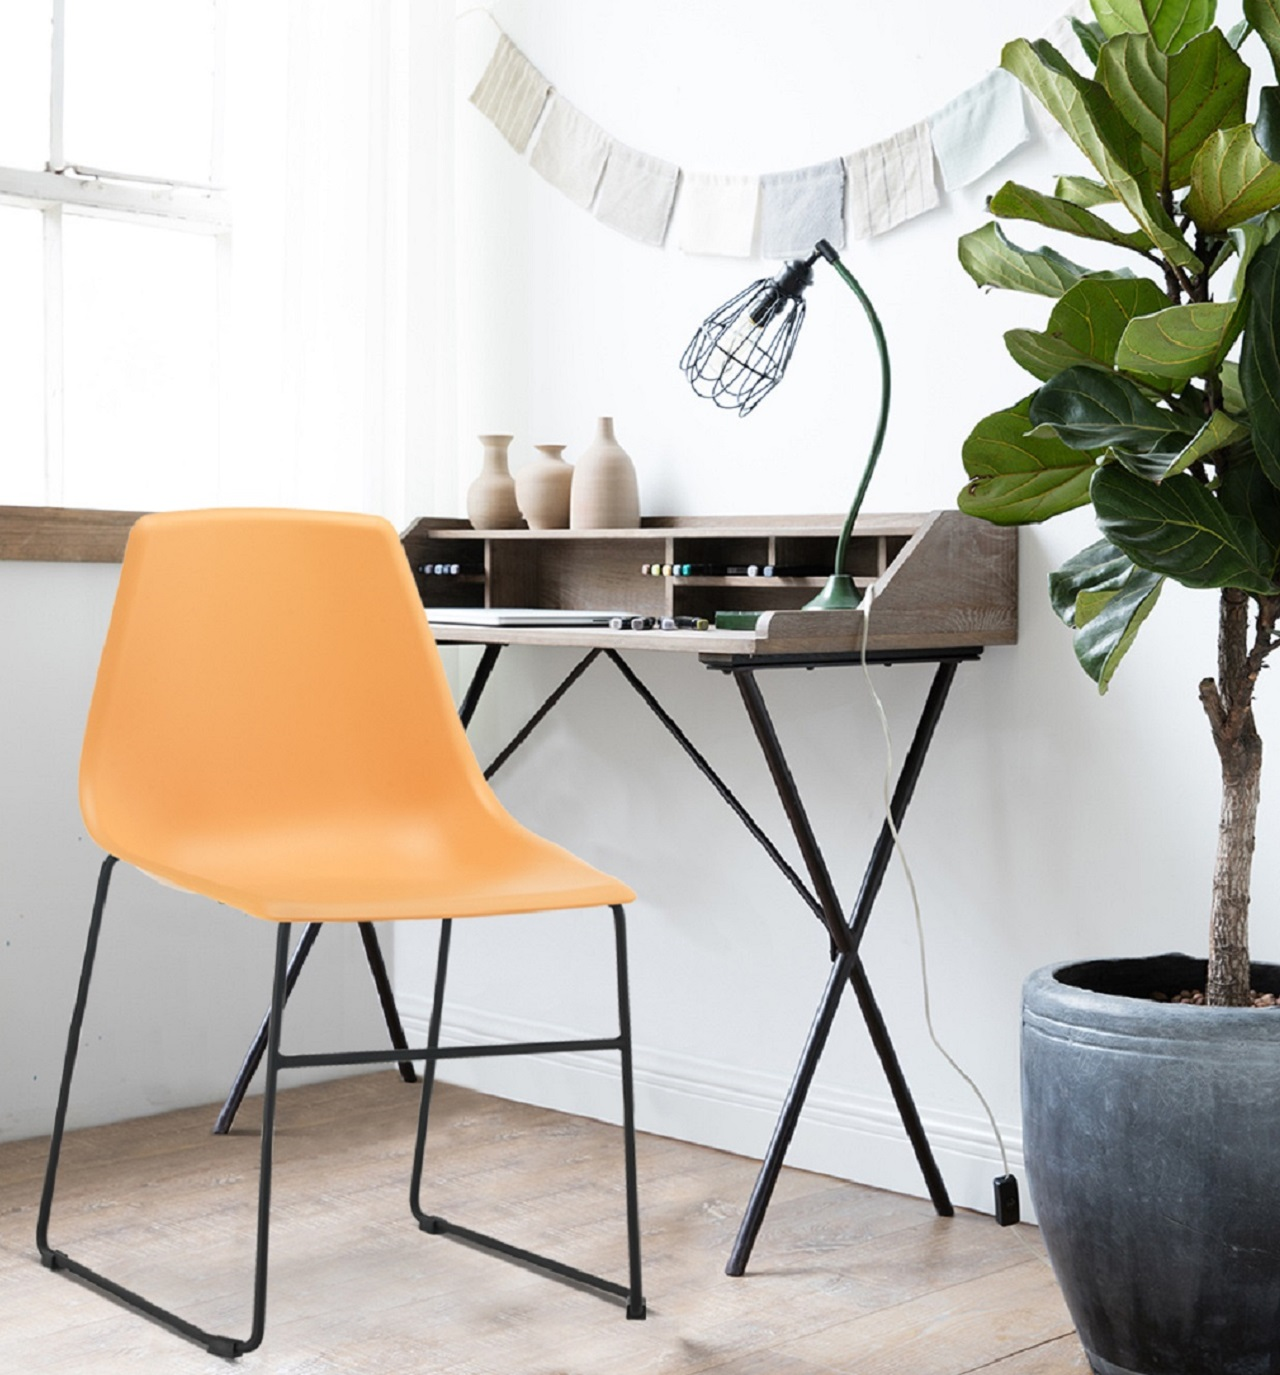 home-office-leisure-KD-chair-2